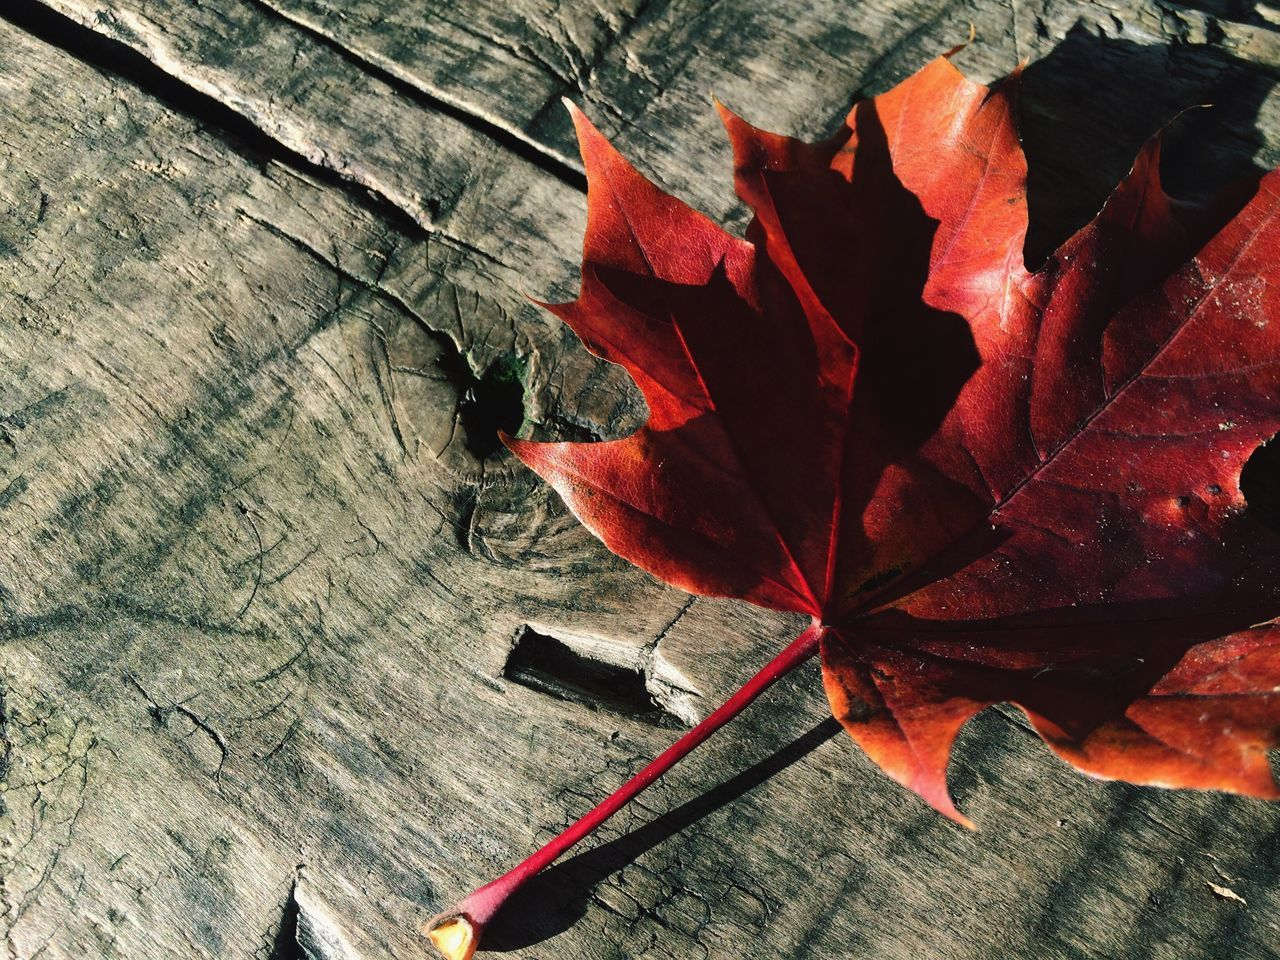 leaf, autumn, change, maple leaf, dry, close-up, day, nature, outdoors, high angle view, no people, red, beauty in nature, maple, fragility